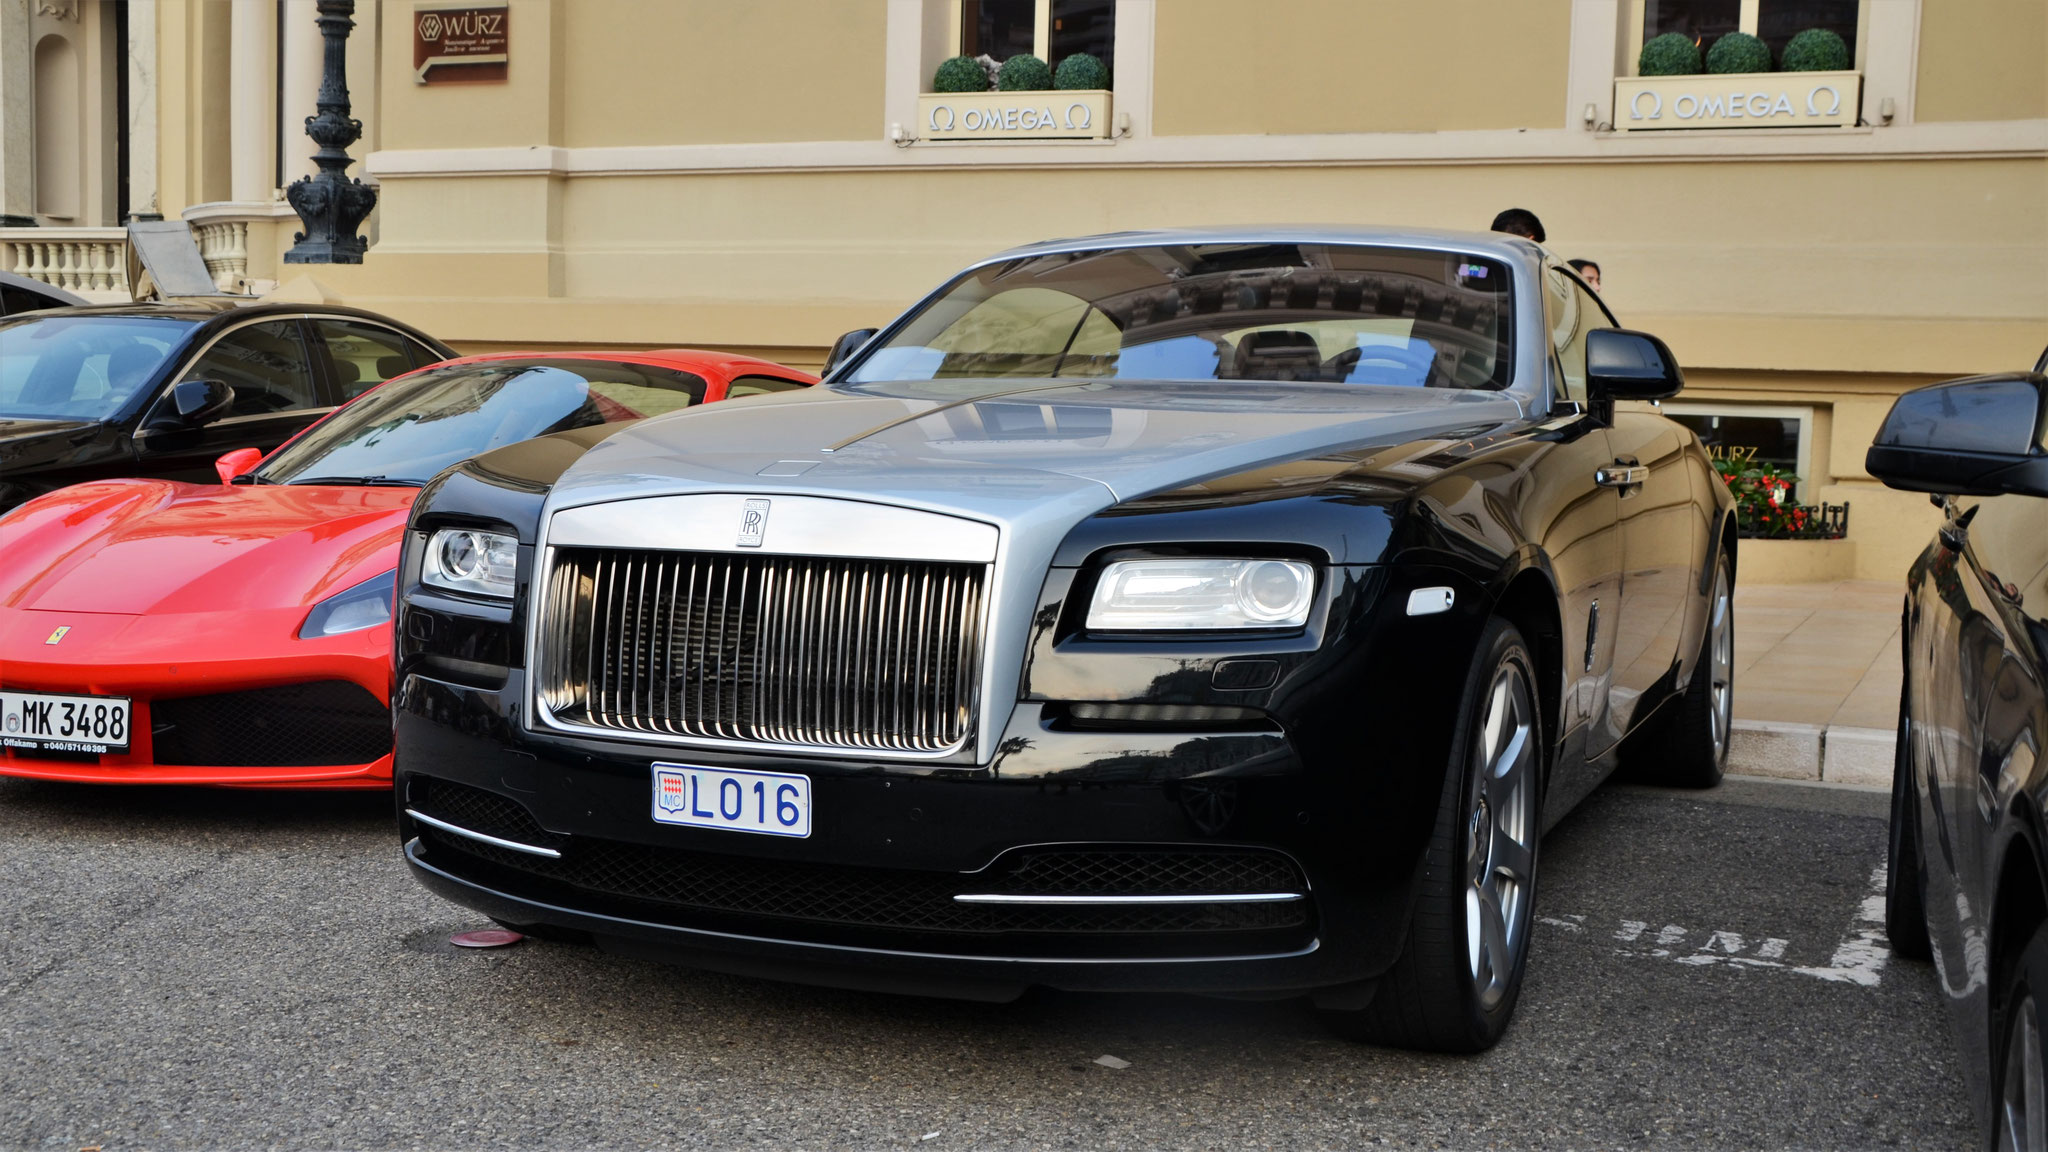 Rolls Royce Ghost - L016 (MC)